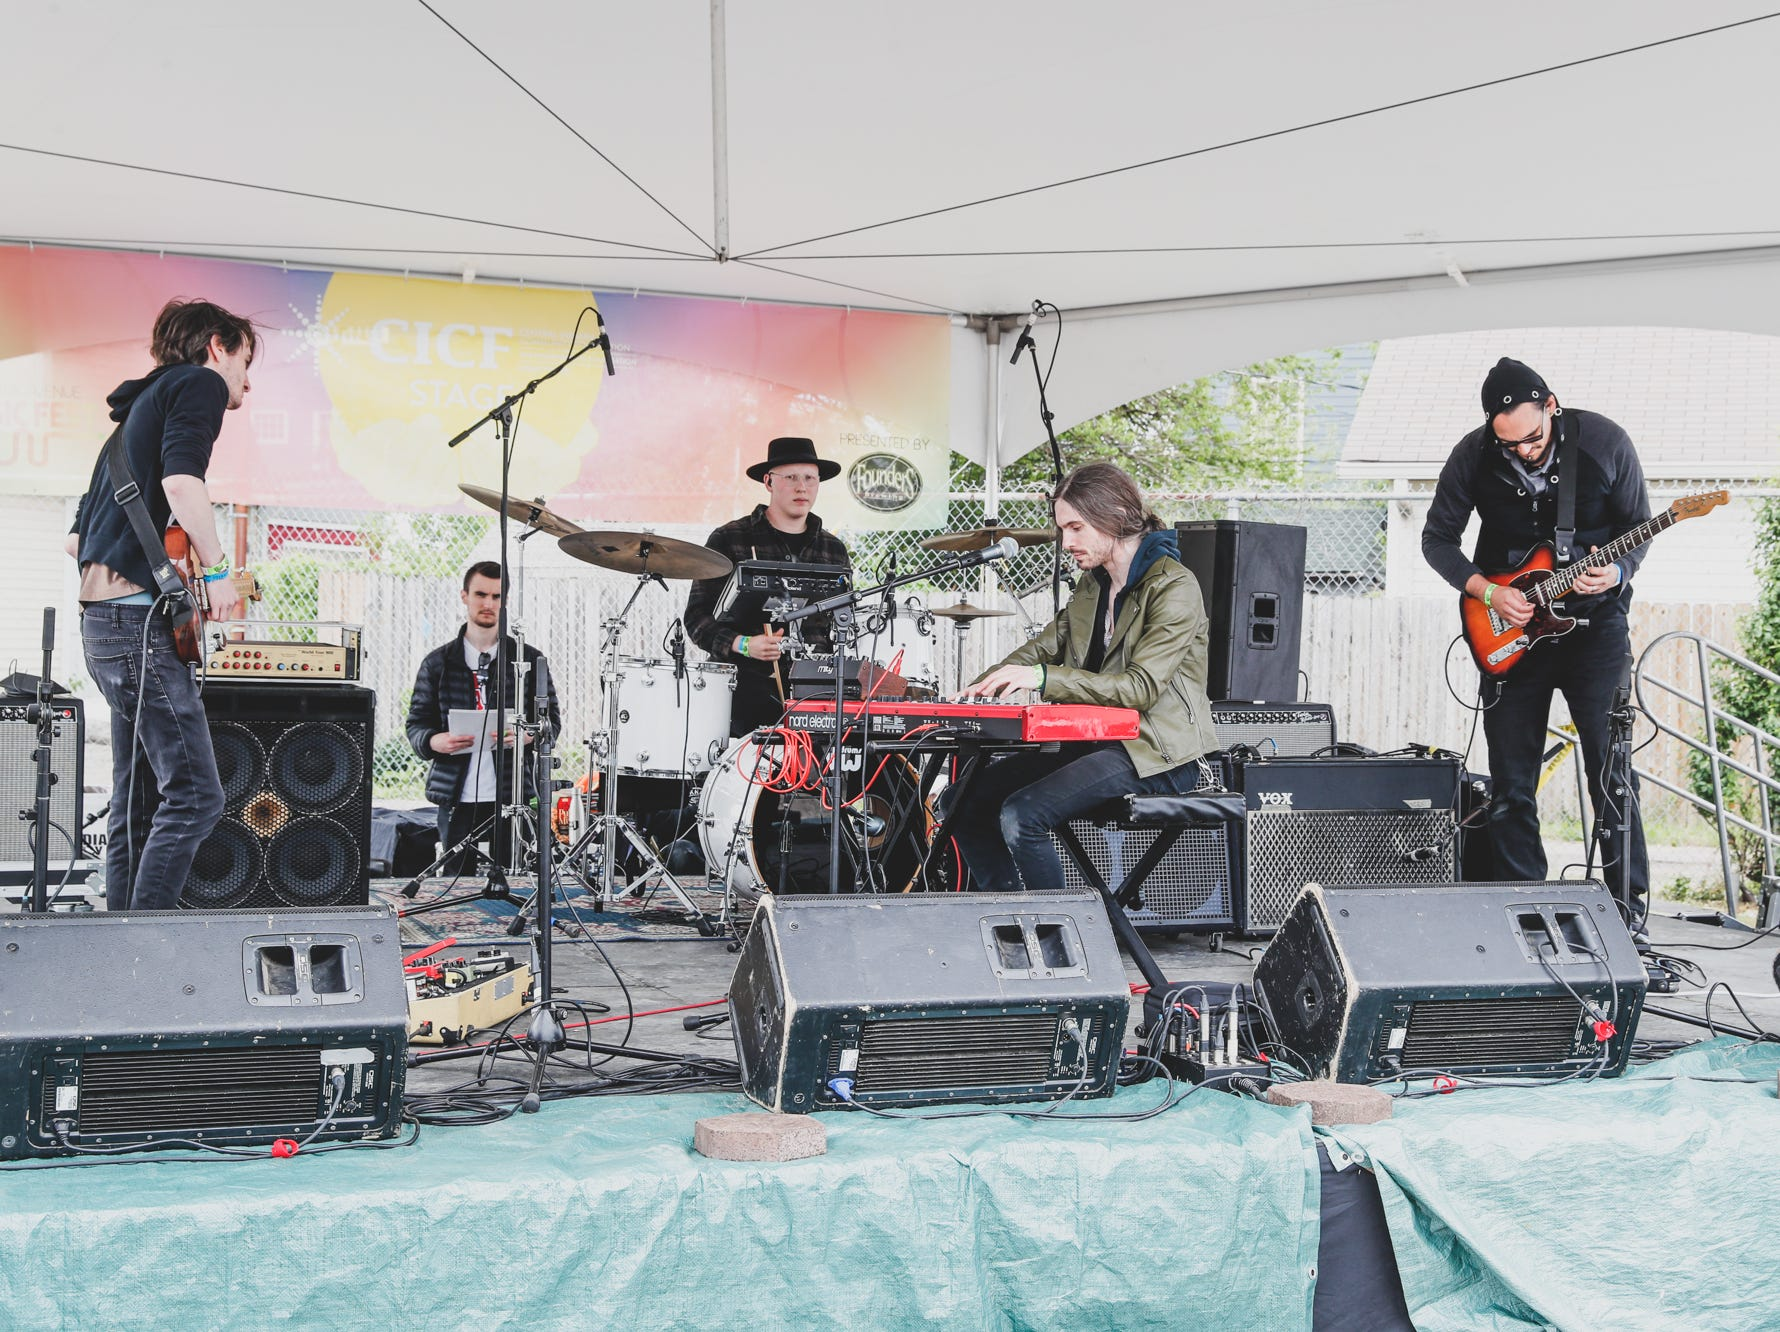 Among Authors warms up on the CICF Stage at Wildwood Market during the Virginia Avenue Music Fest, held in Fountain Square, located in Indianapolis, on Saturday, May 11, 2019.